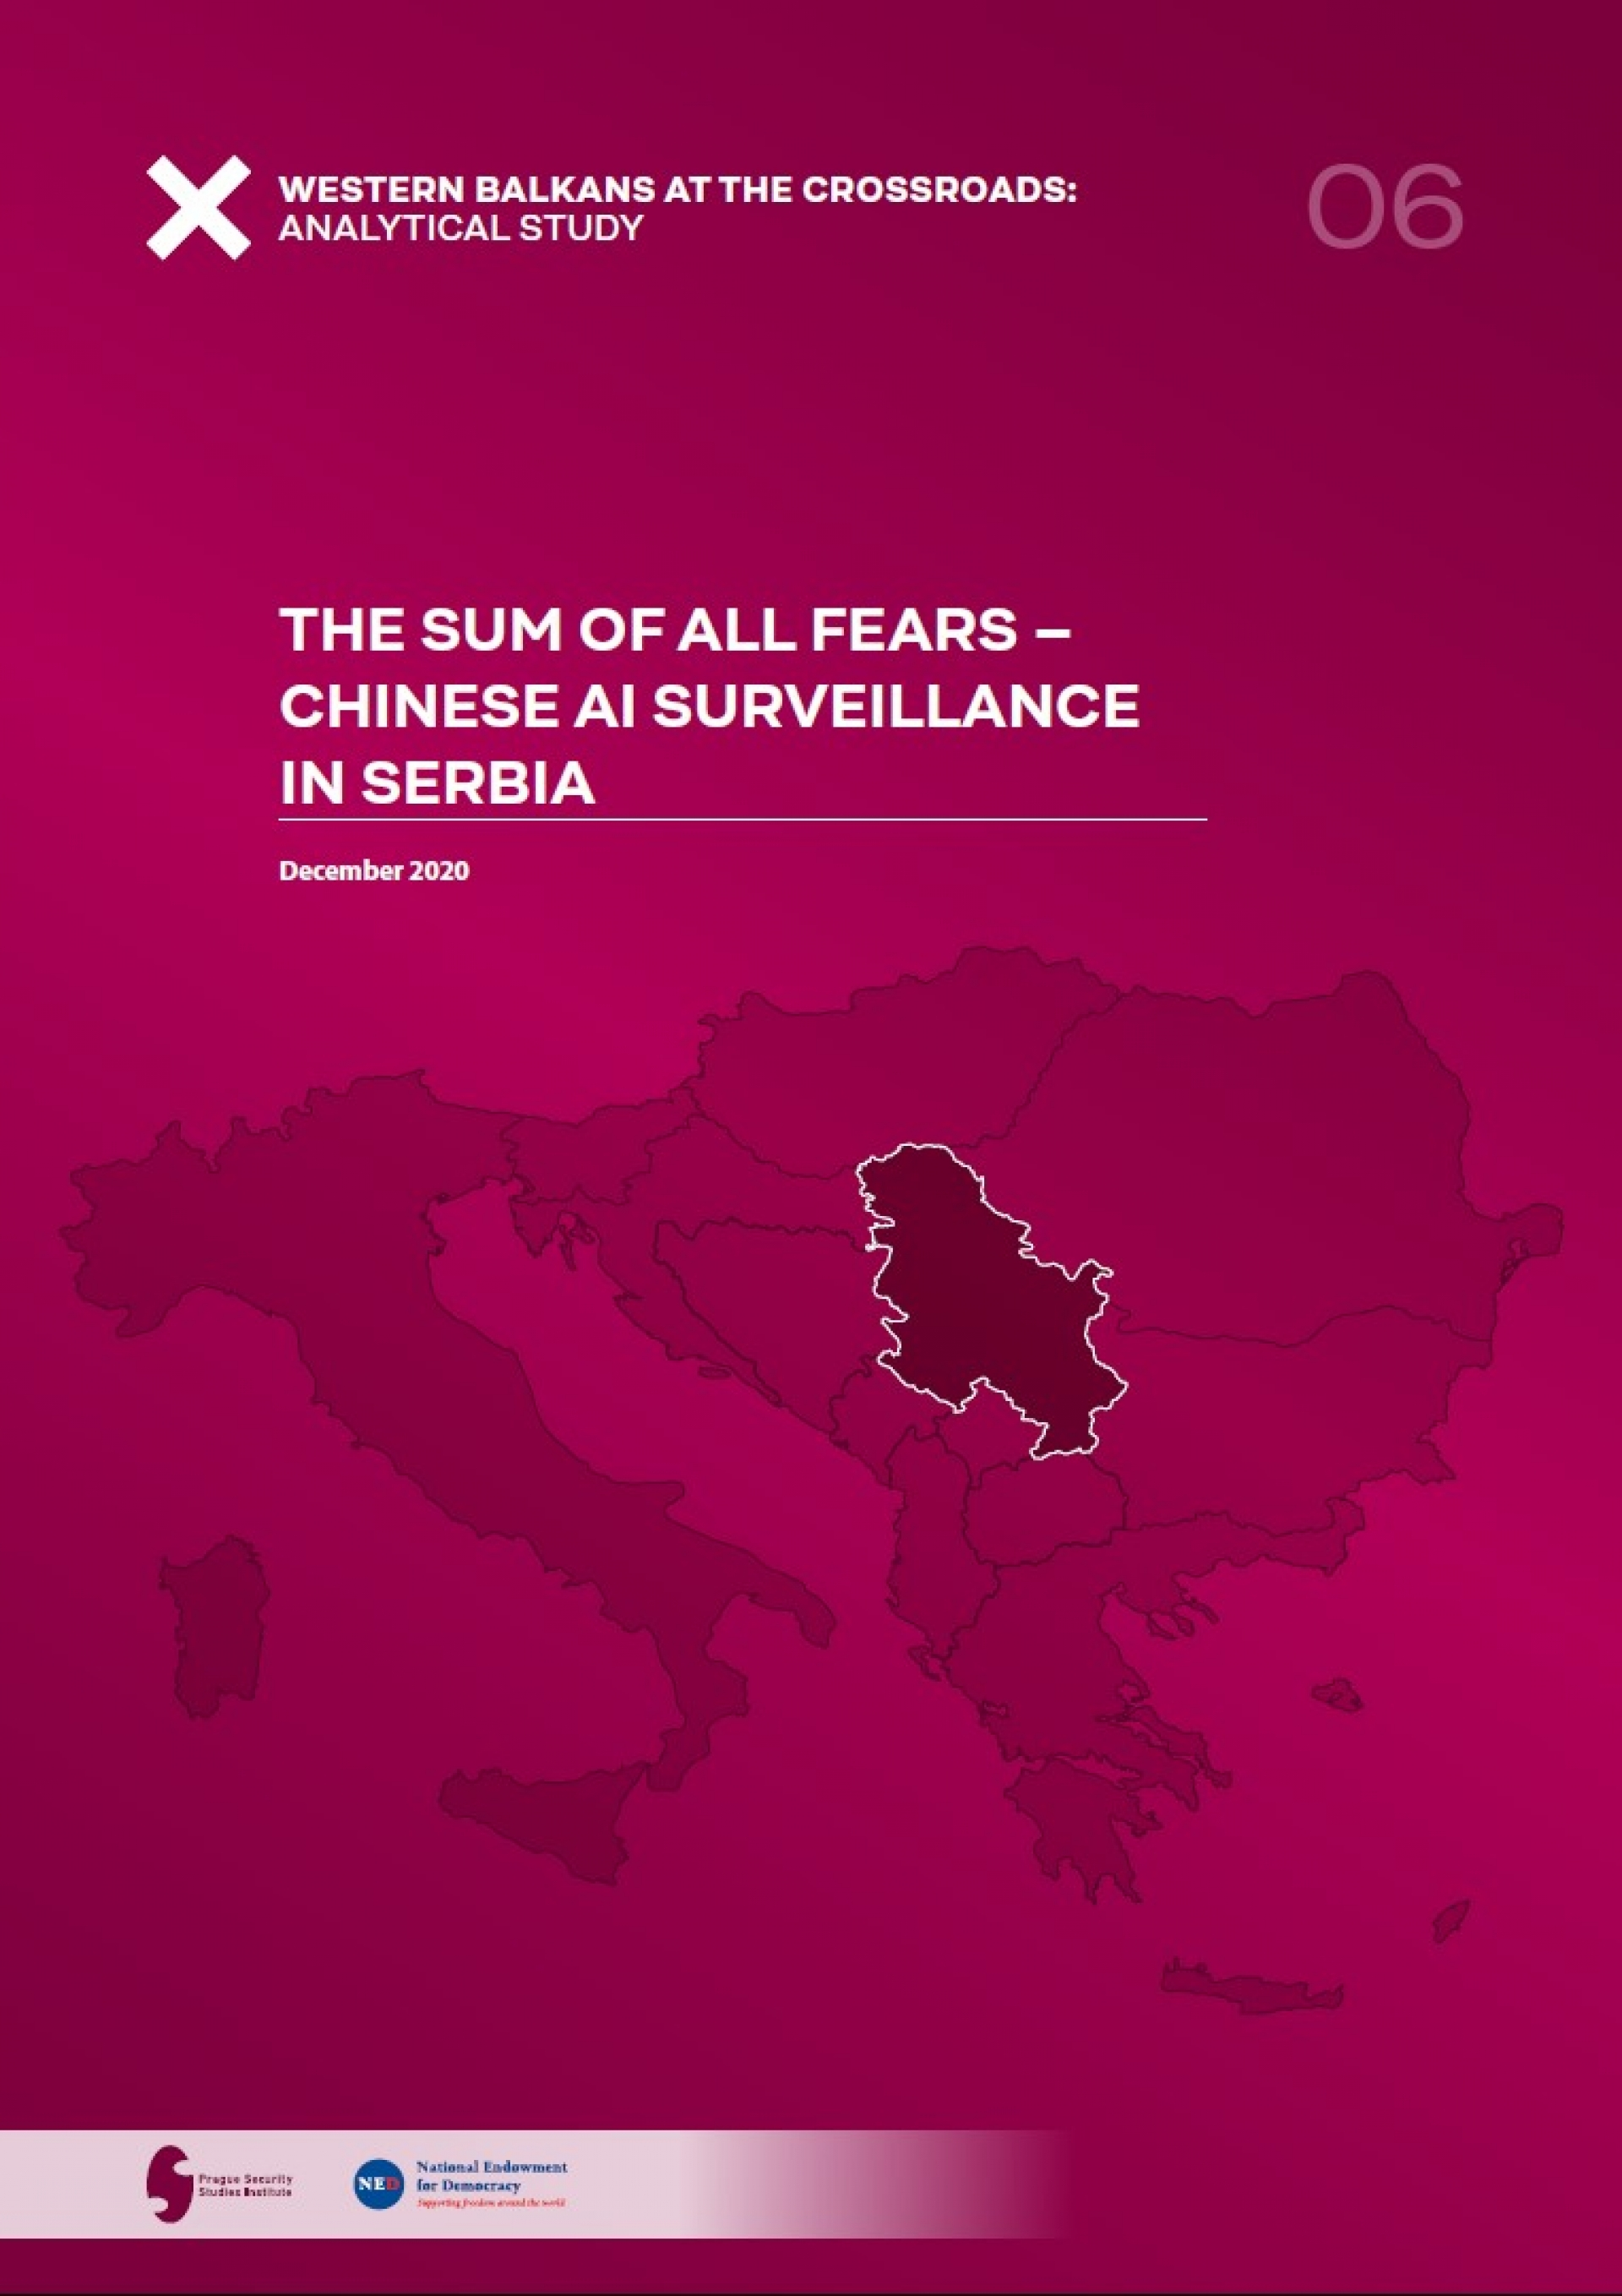 The Sum of All Fears – Chinese AI Surveillance in Serbia COVERPHOTO